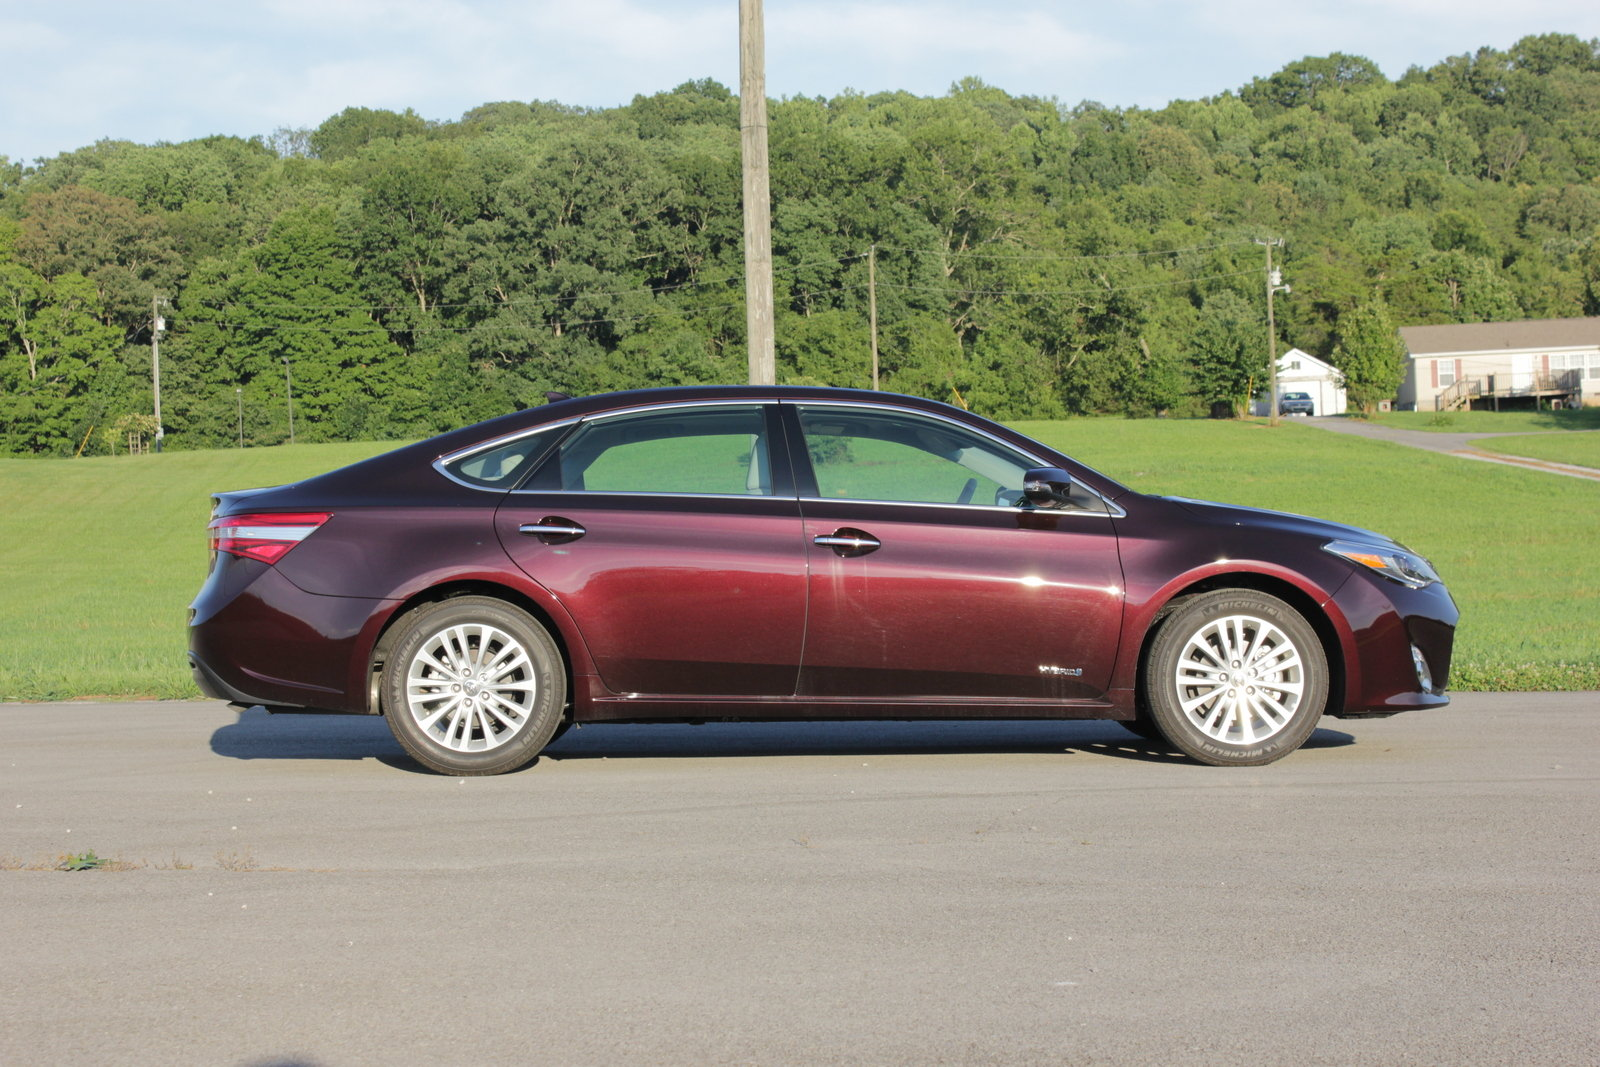 2014 toyota avalon hybrid driven picture 561048 car review top speed. Black Bedroom Furniture Sets. Home Design Ideas